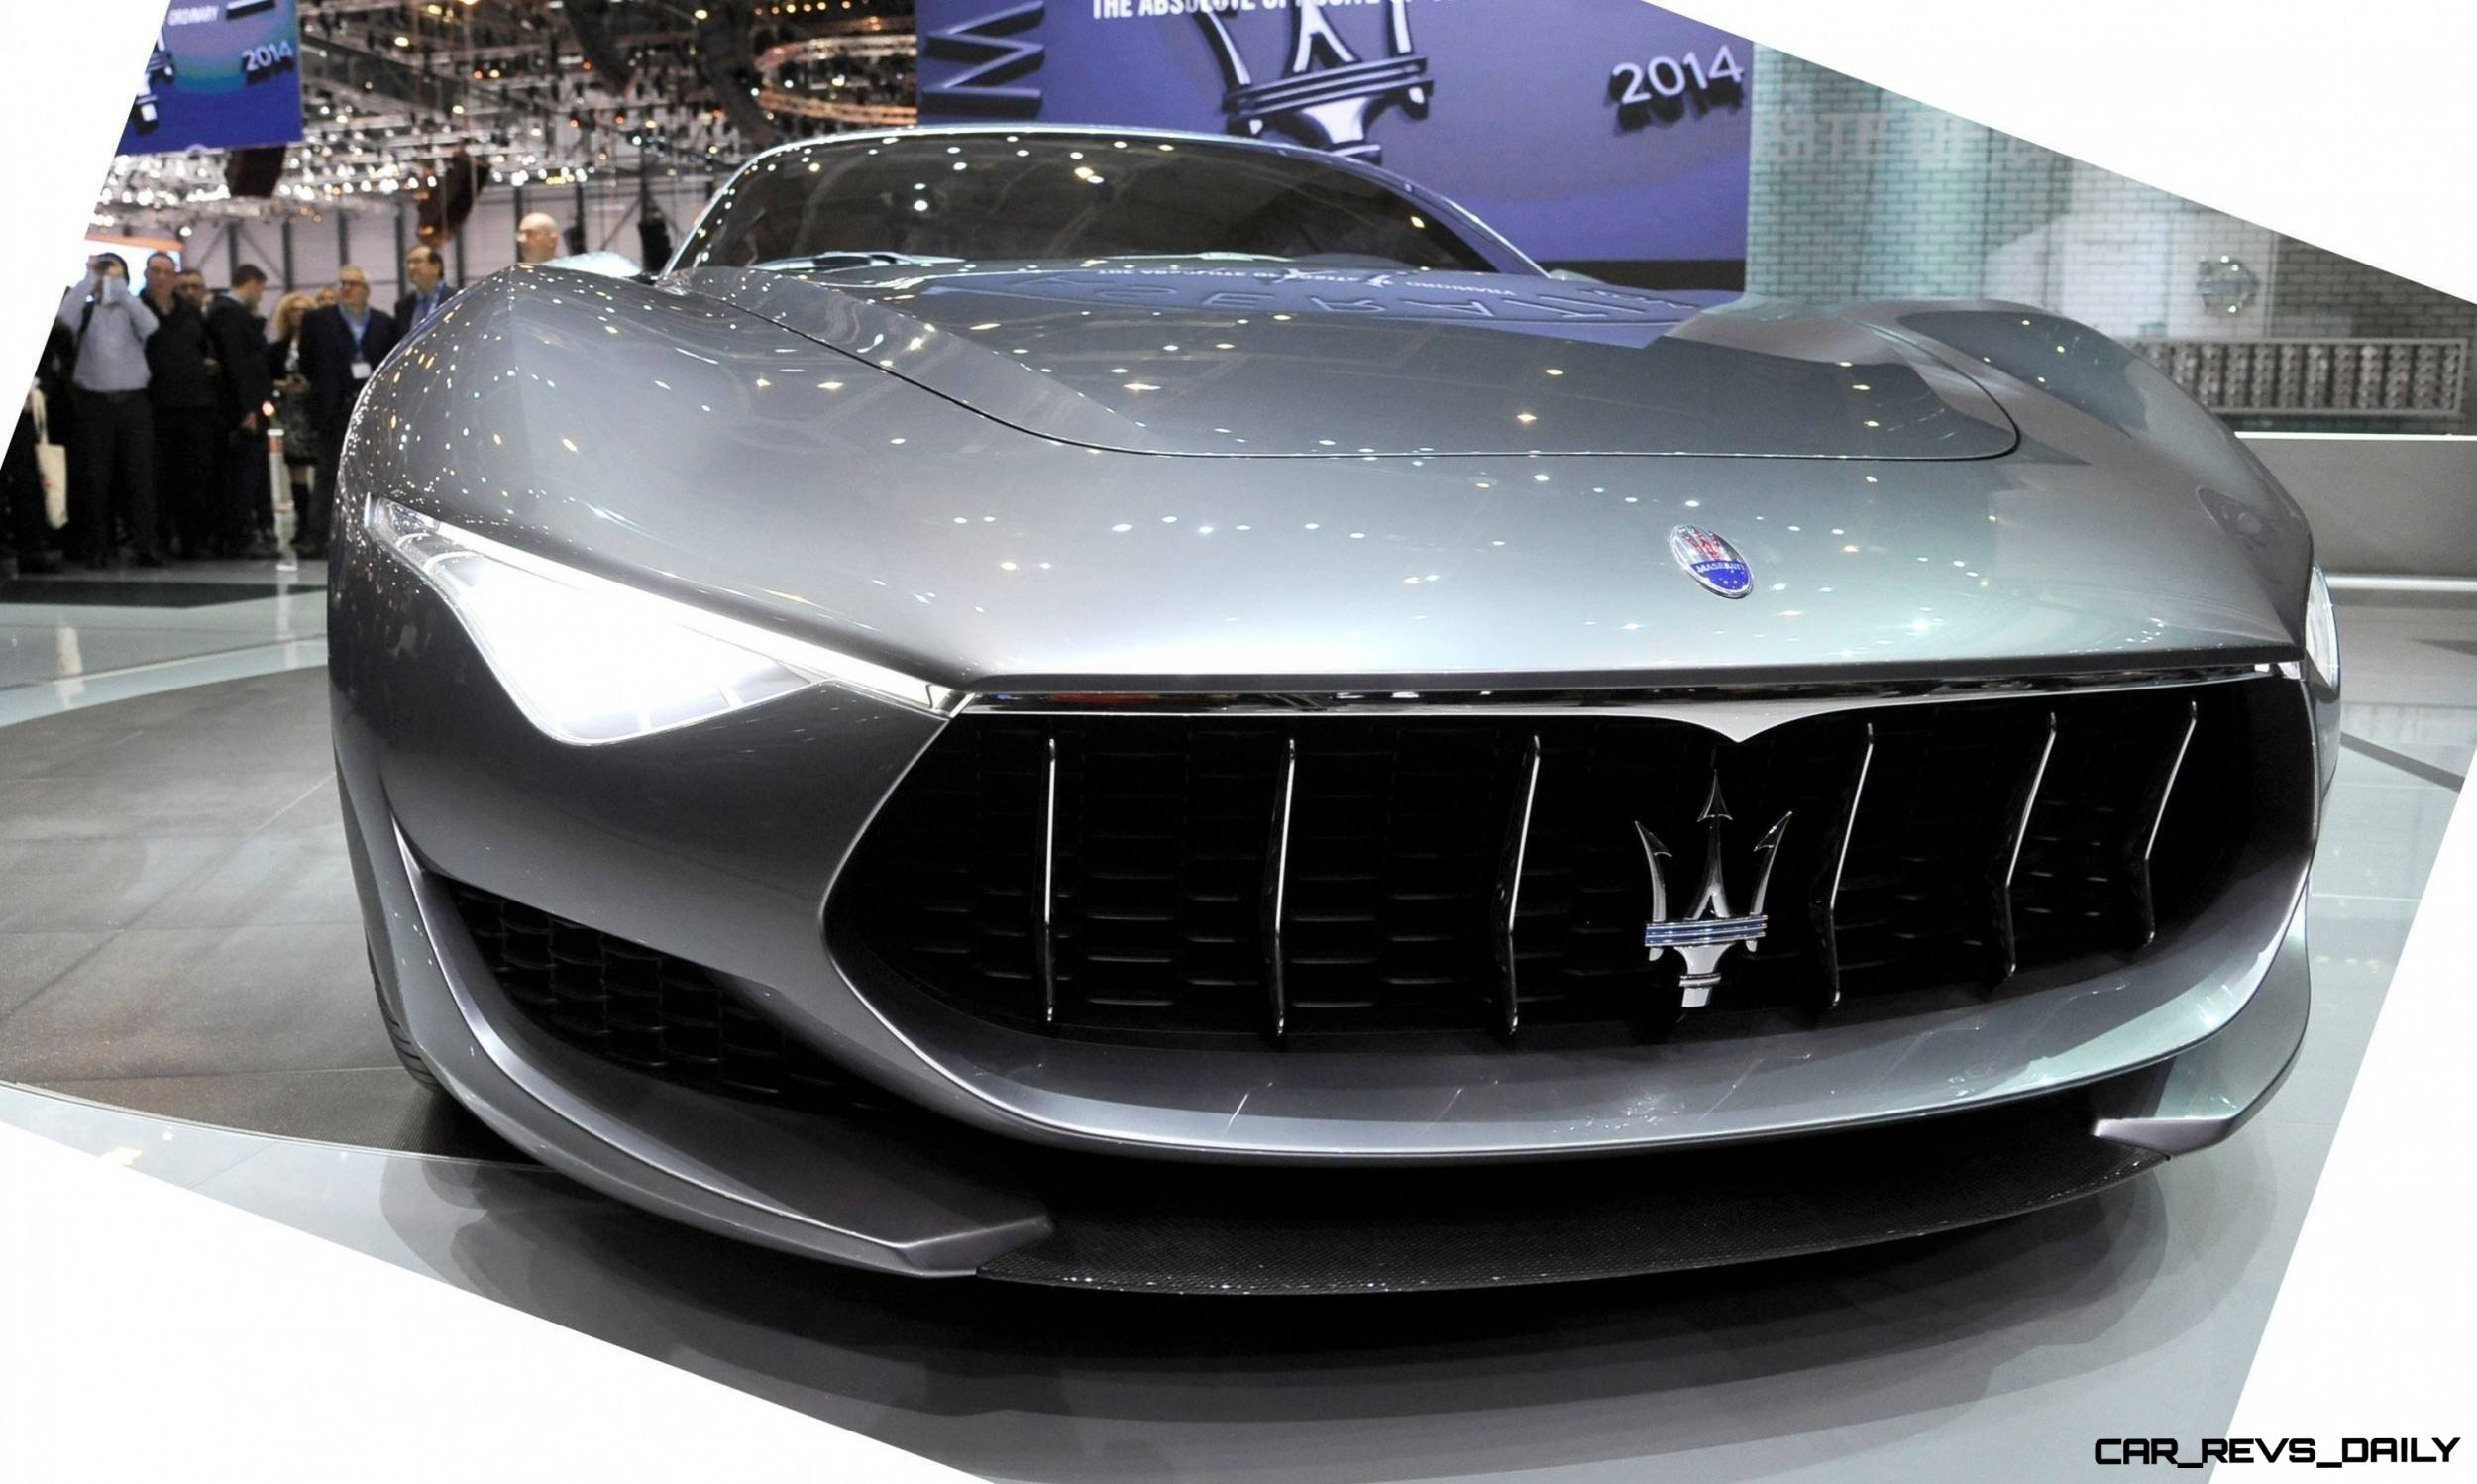 design analysis 2014 alfieri maserati concept. Black Bedroom Furniture Sets. Home Design Ideas